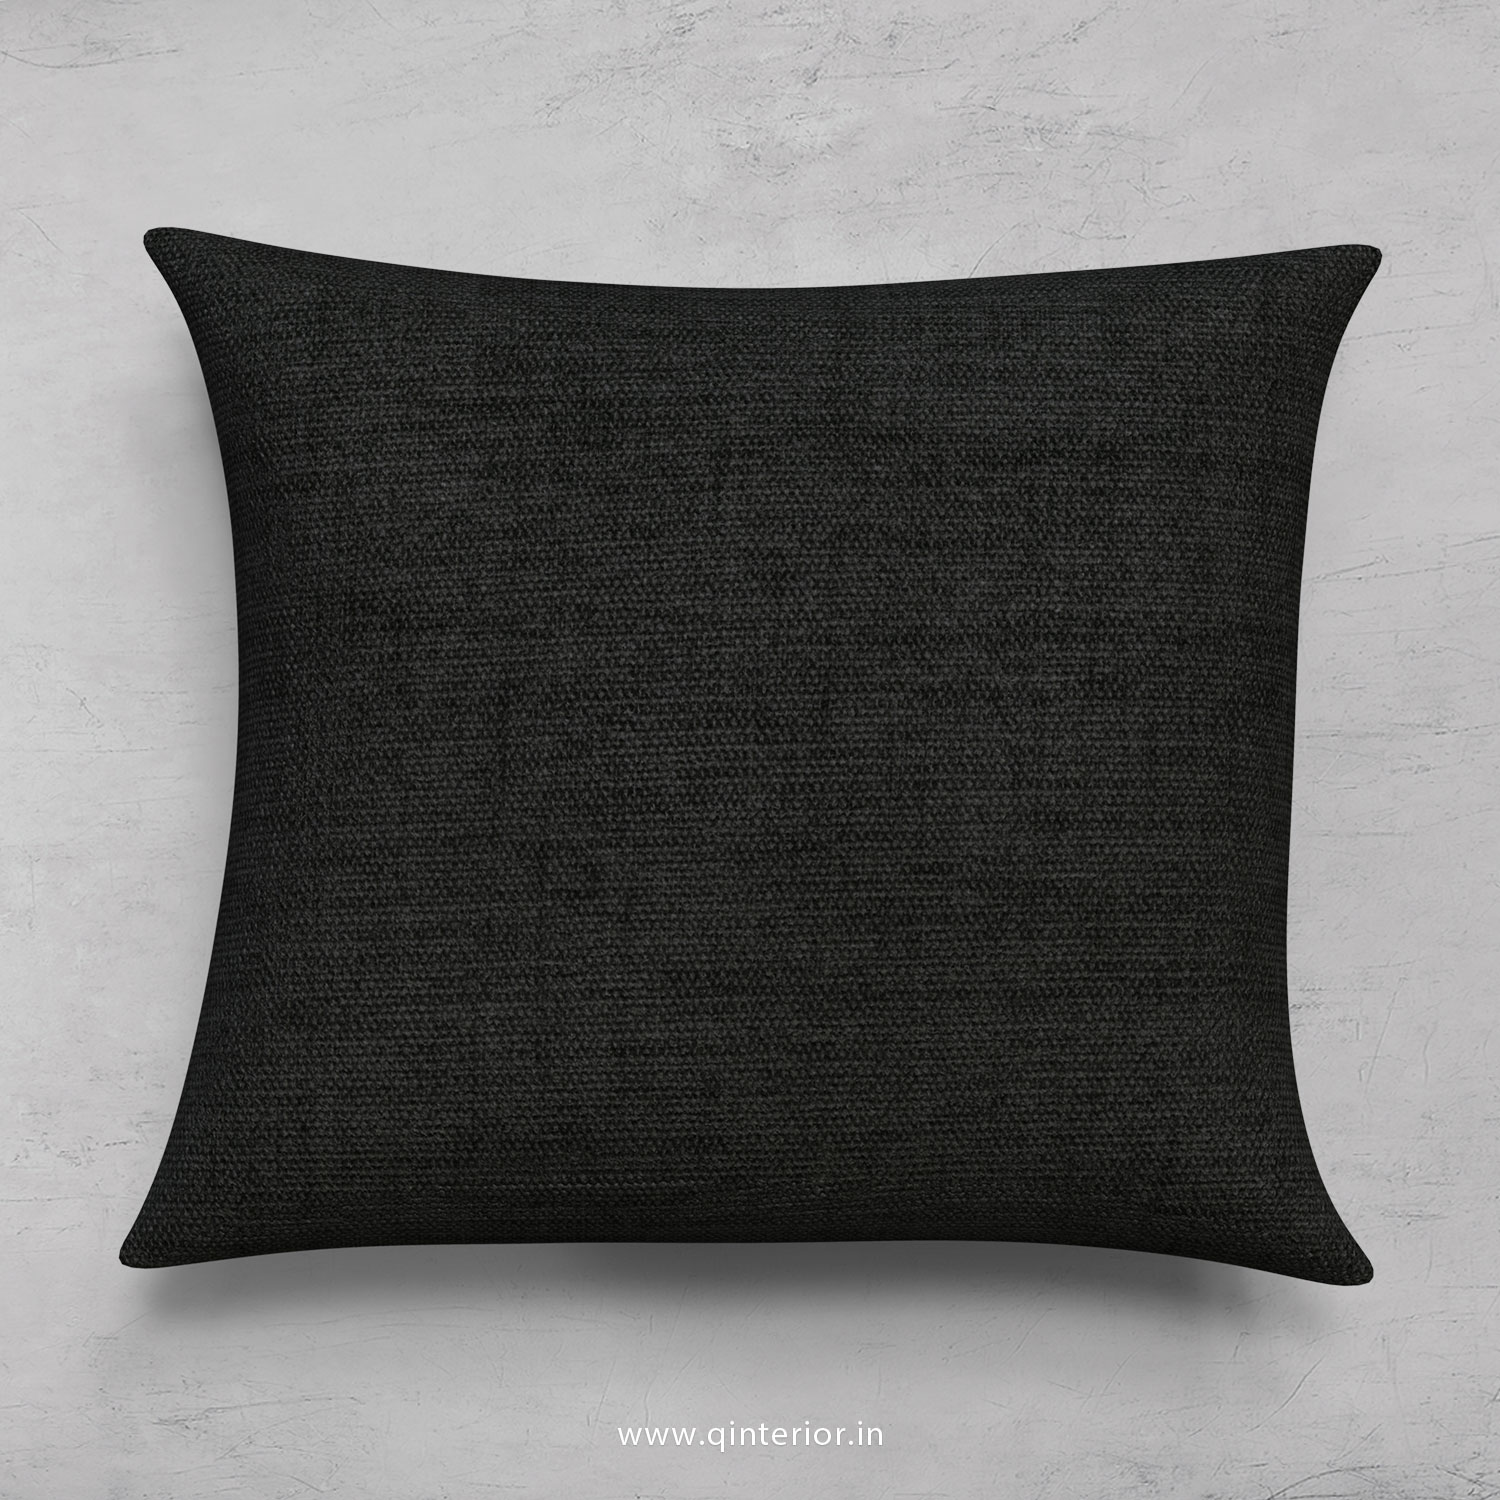 Cushion With Cushion Cover in Marvello - CUS001 MV04